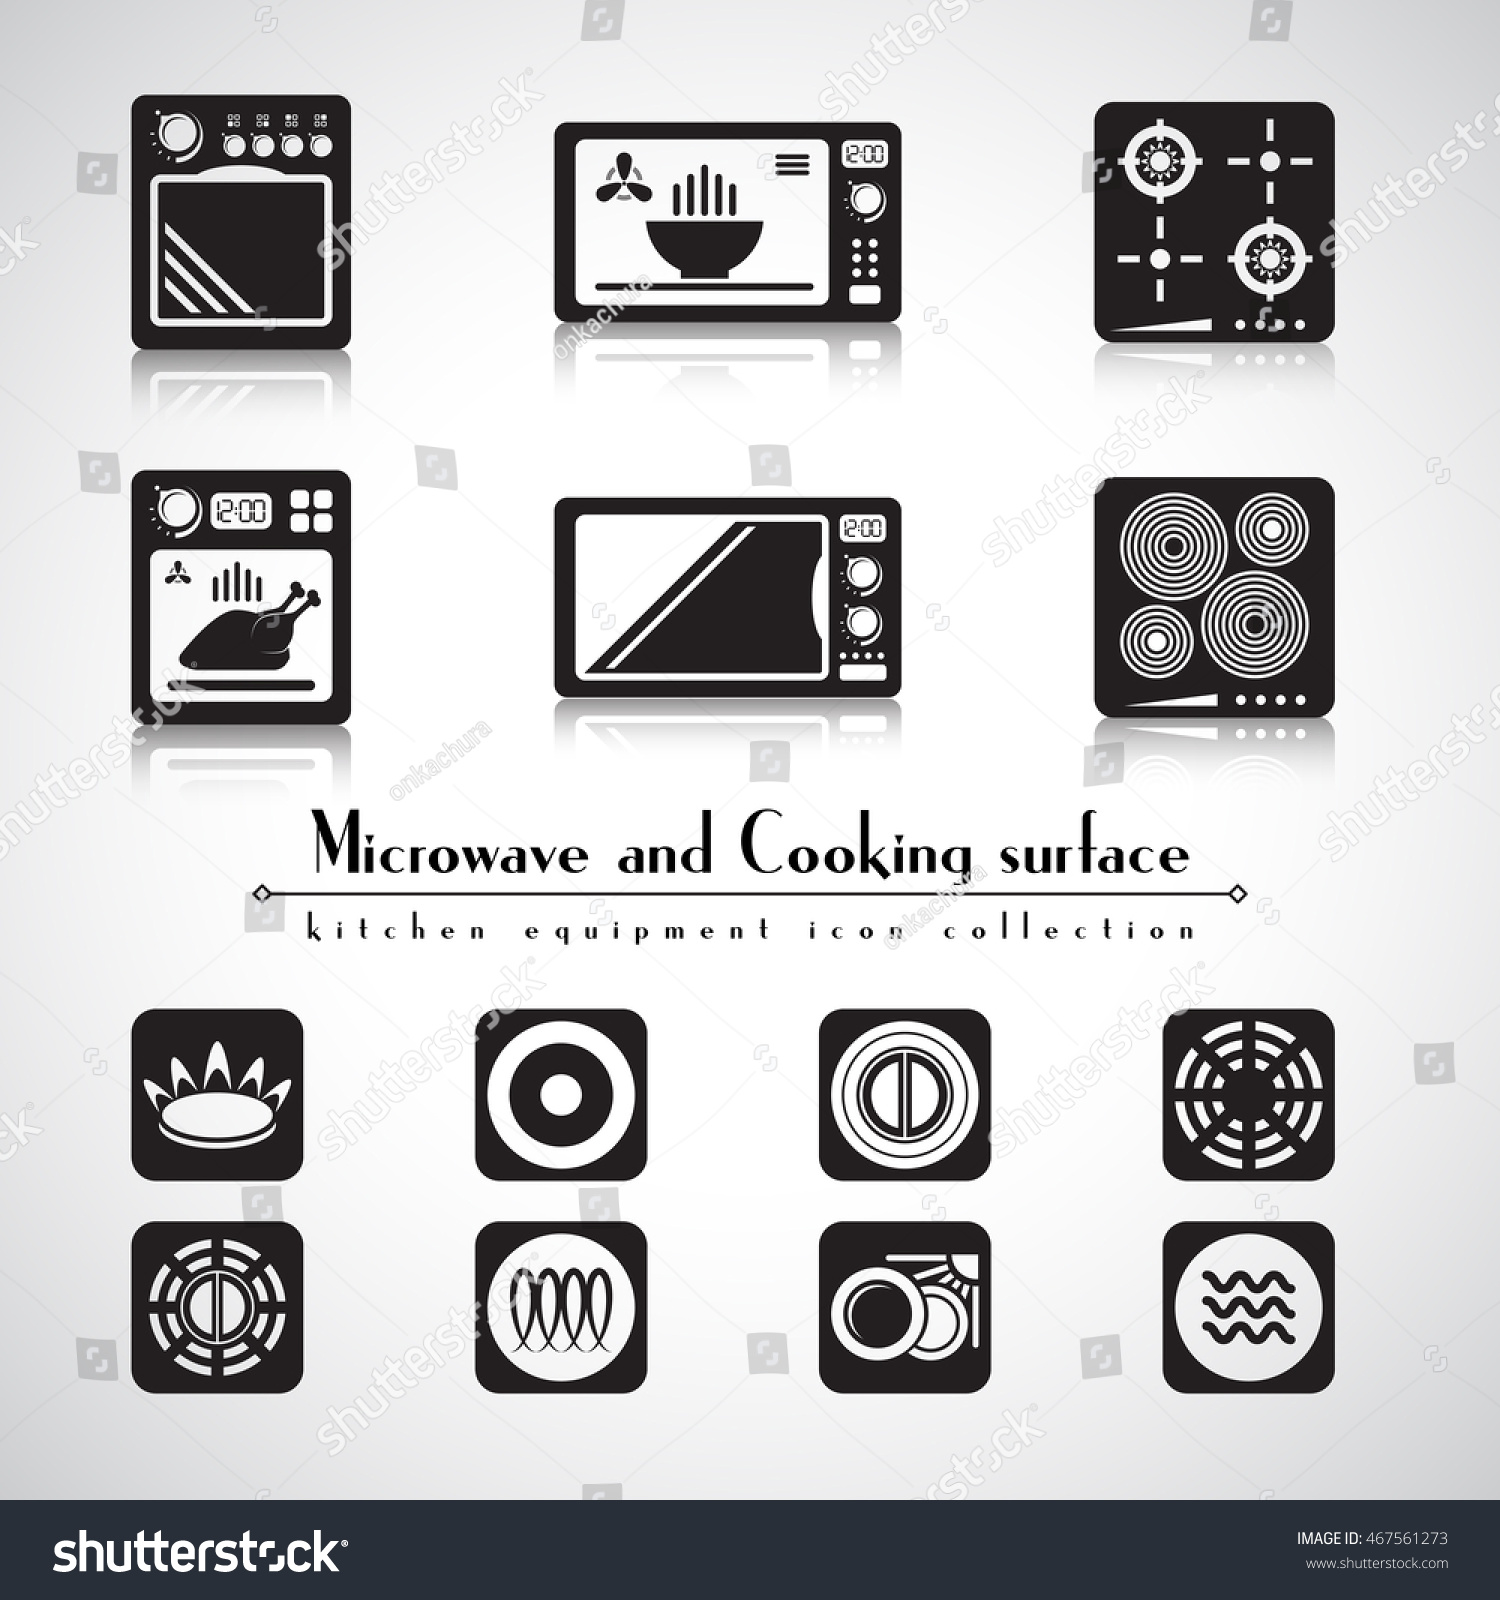 Microwave hob stove cooking surface icon stock vector for Kitchen set vector